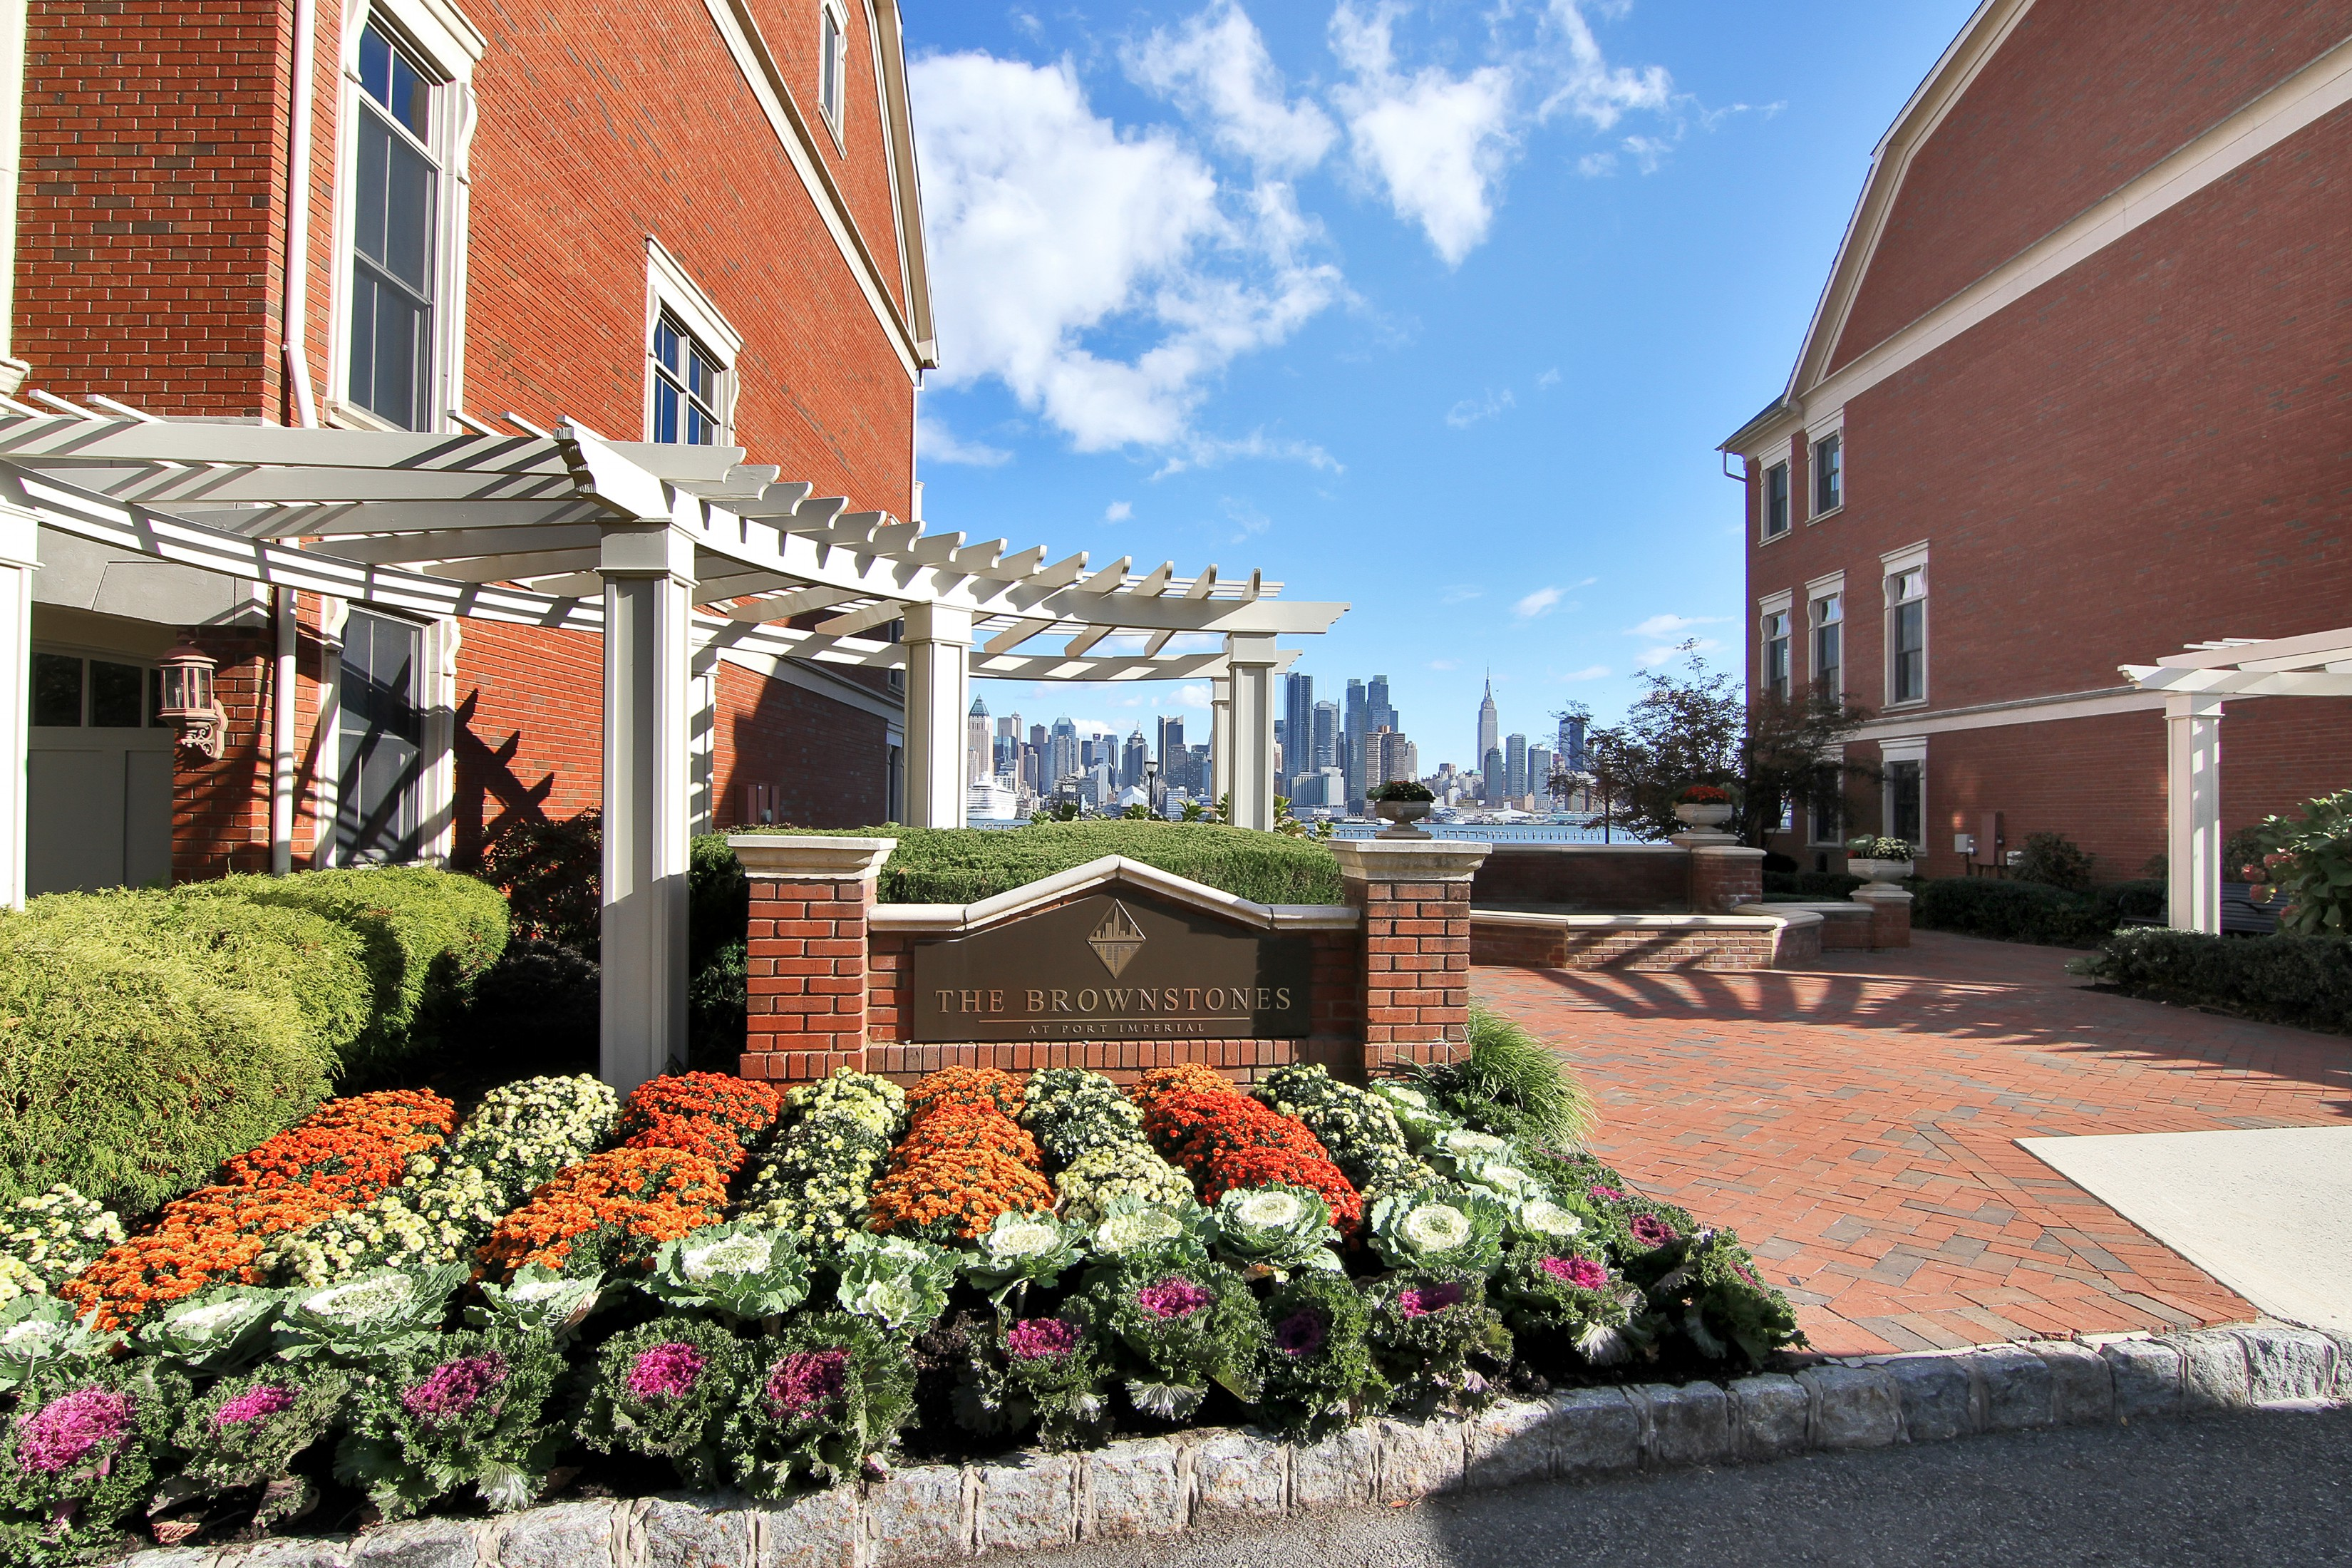 Таунхаус для того Аренда на Brownstone at Port Imperial! 31 Regency Place #31 Weehawken, 07086 Соединенные Штаты